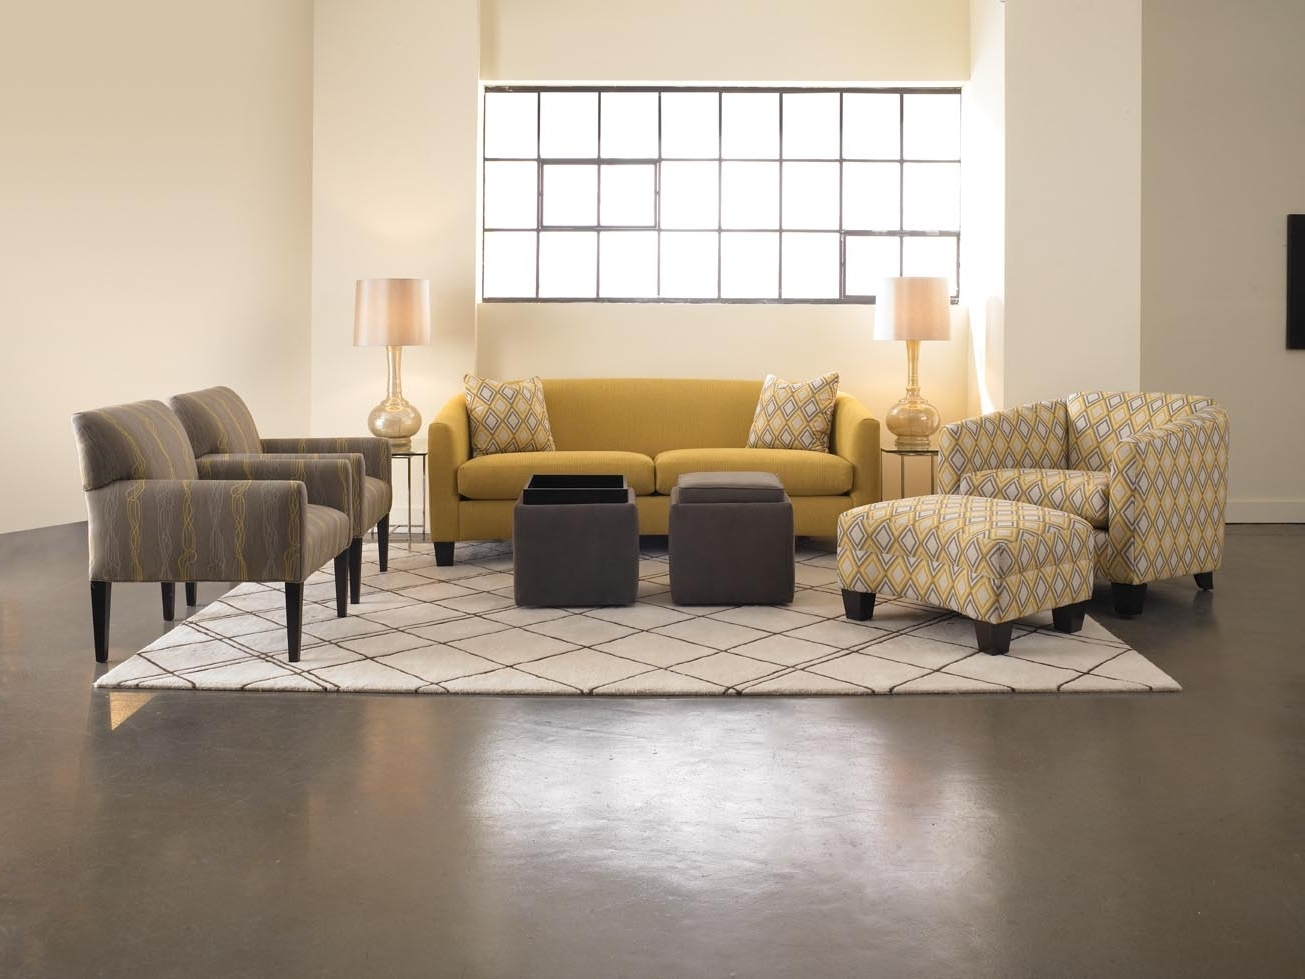 Fabric Living Room Sofa And Carpet Modern Furniture Set (Image 8 of 10)